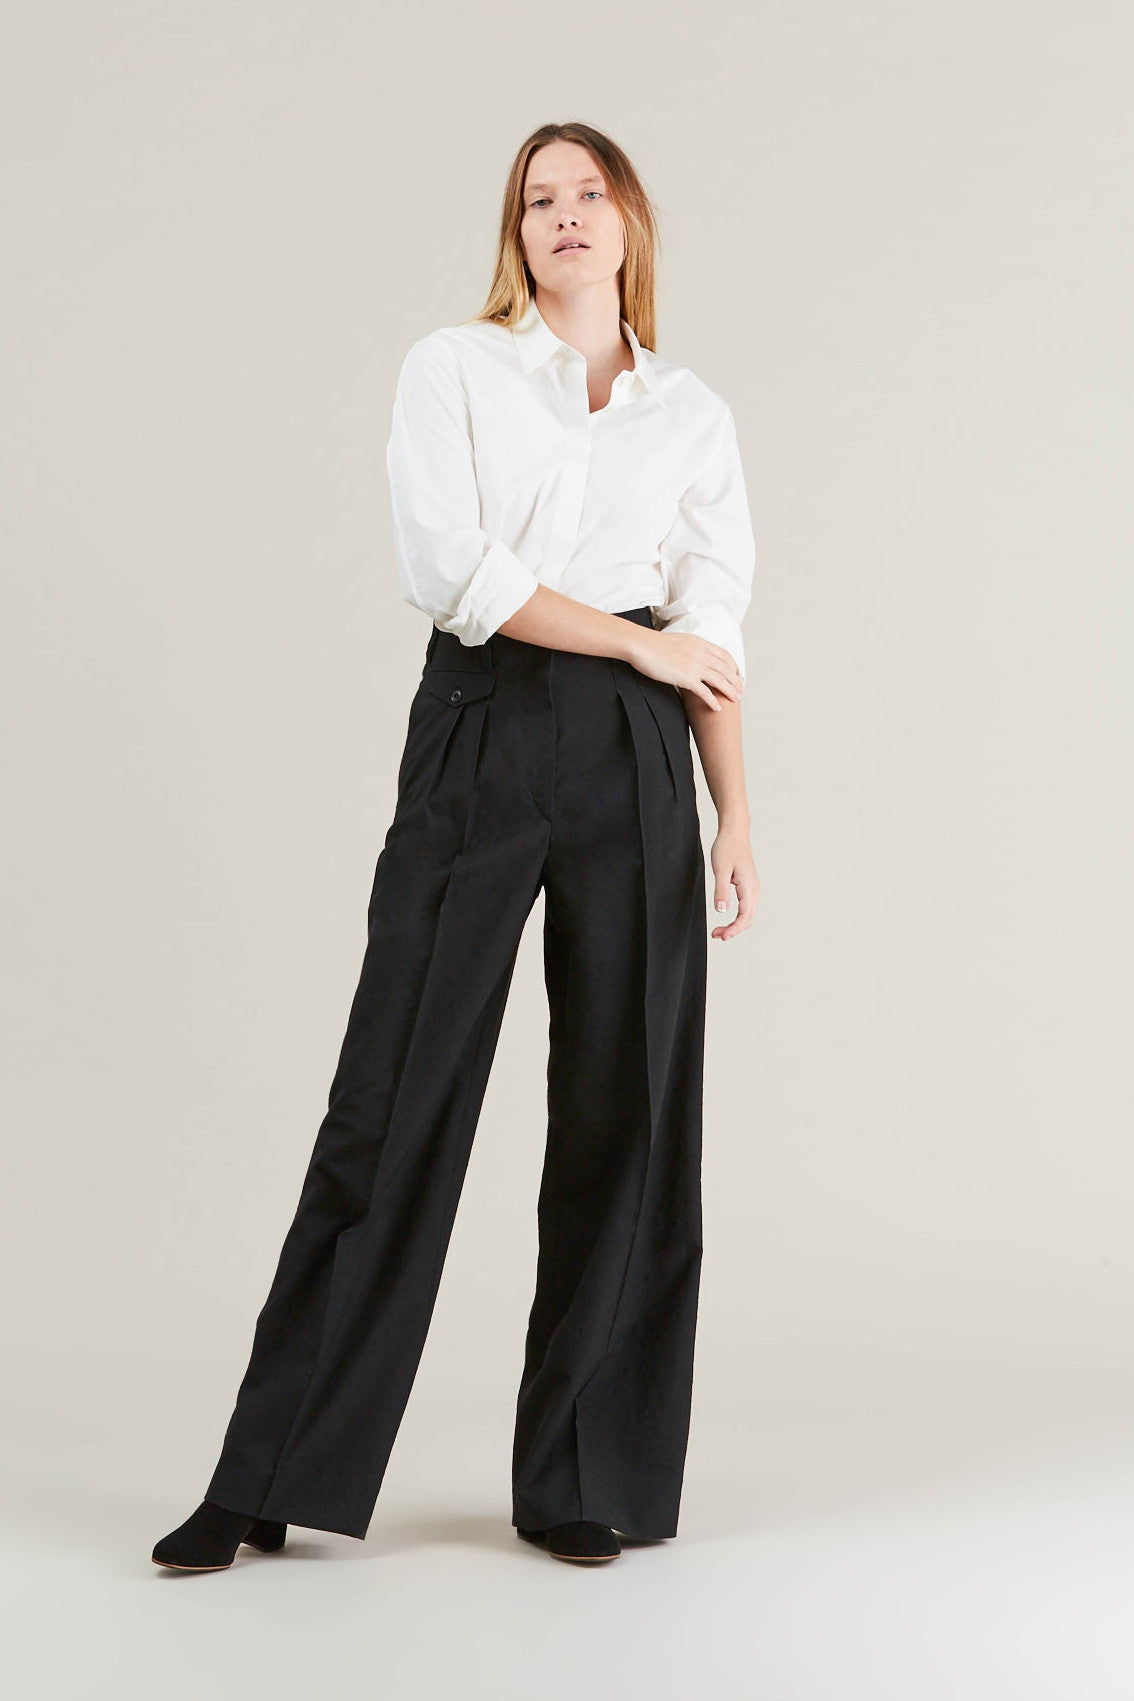 Two Pleated Pants, Black by Lemaire @ Kick Pleat - 1